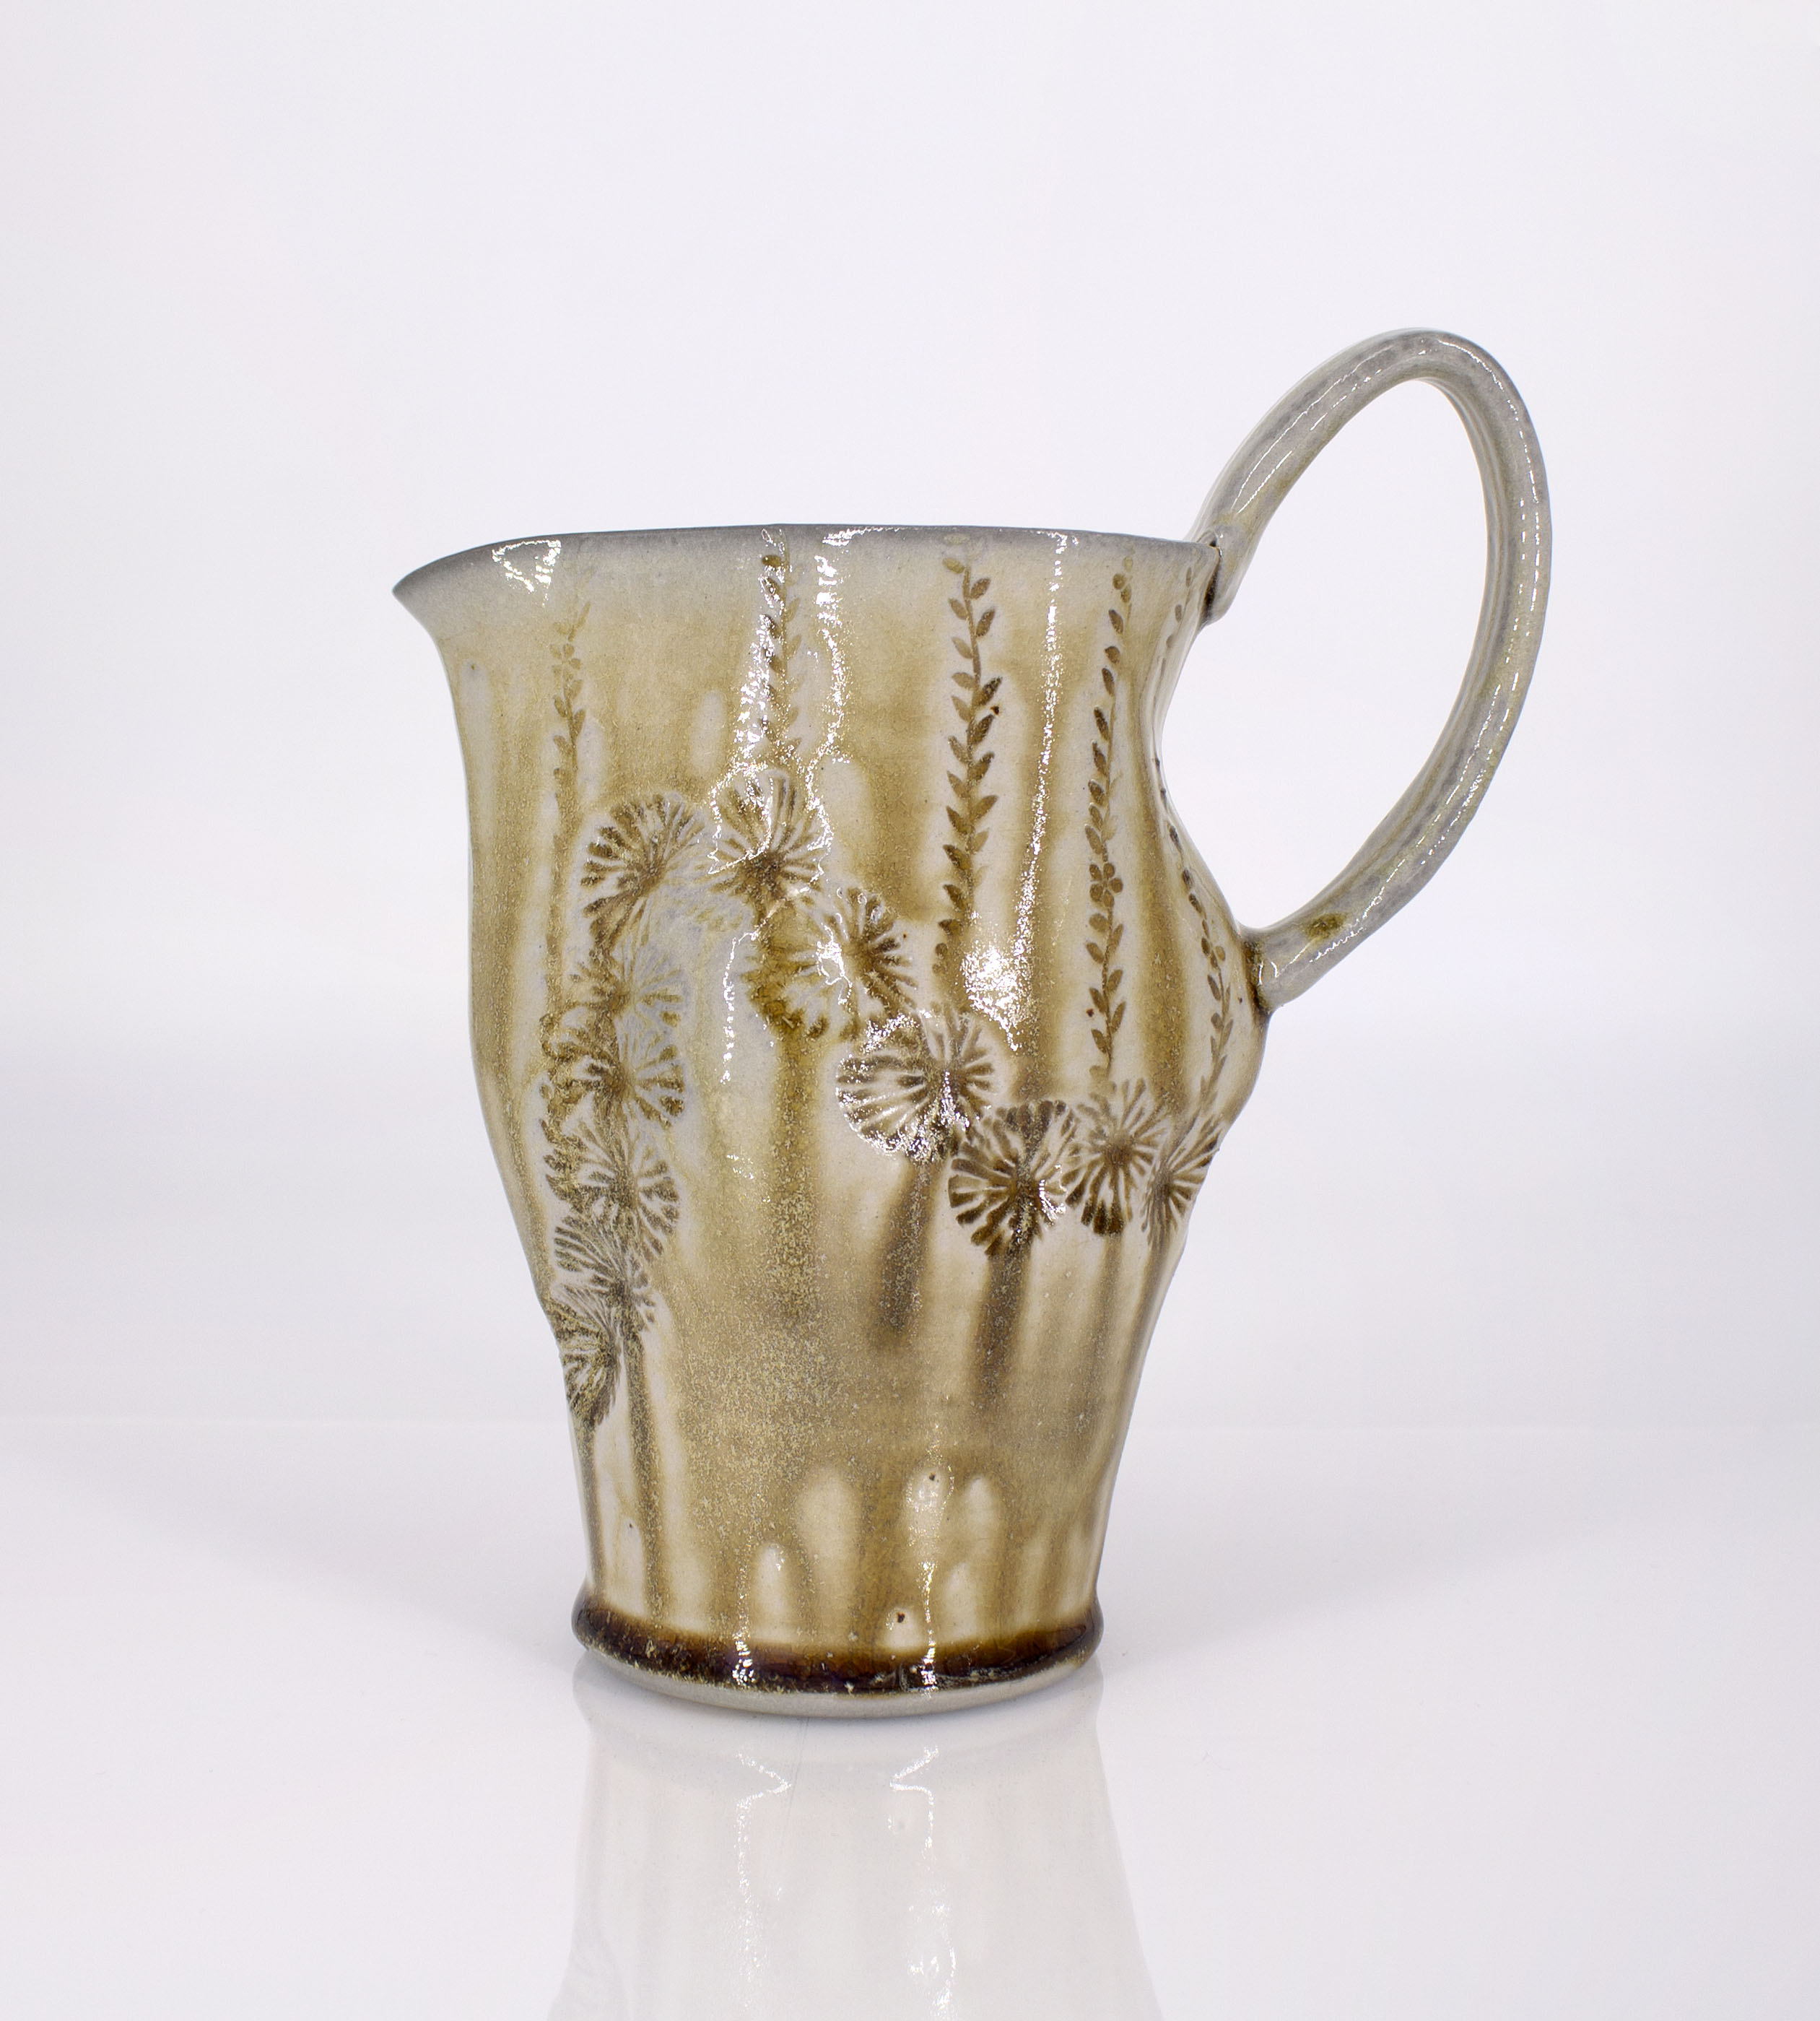 Soda fired small pitcher, 2020